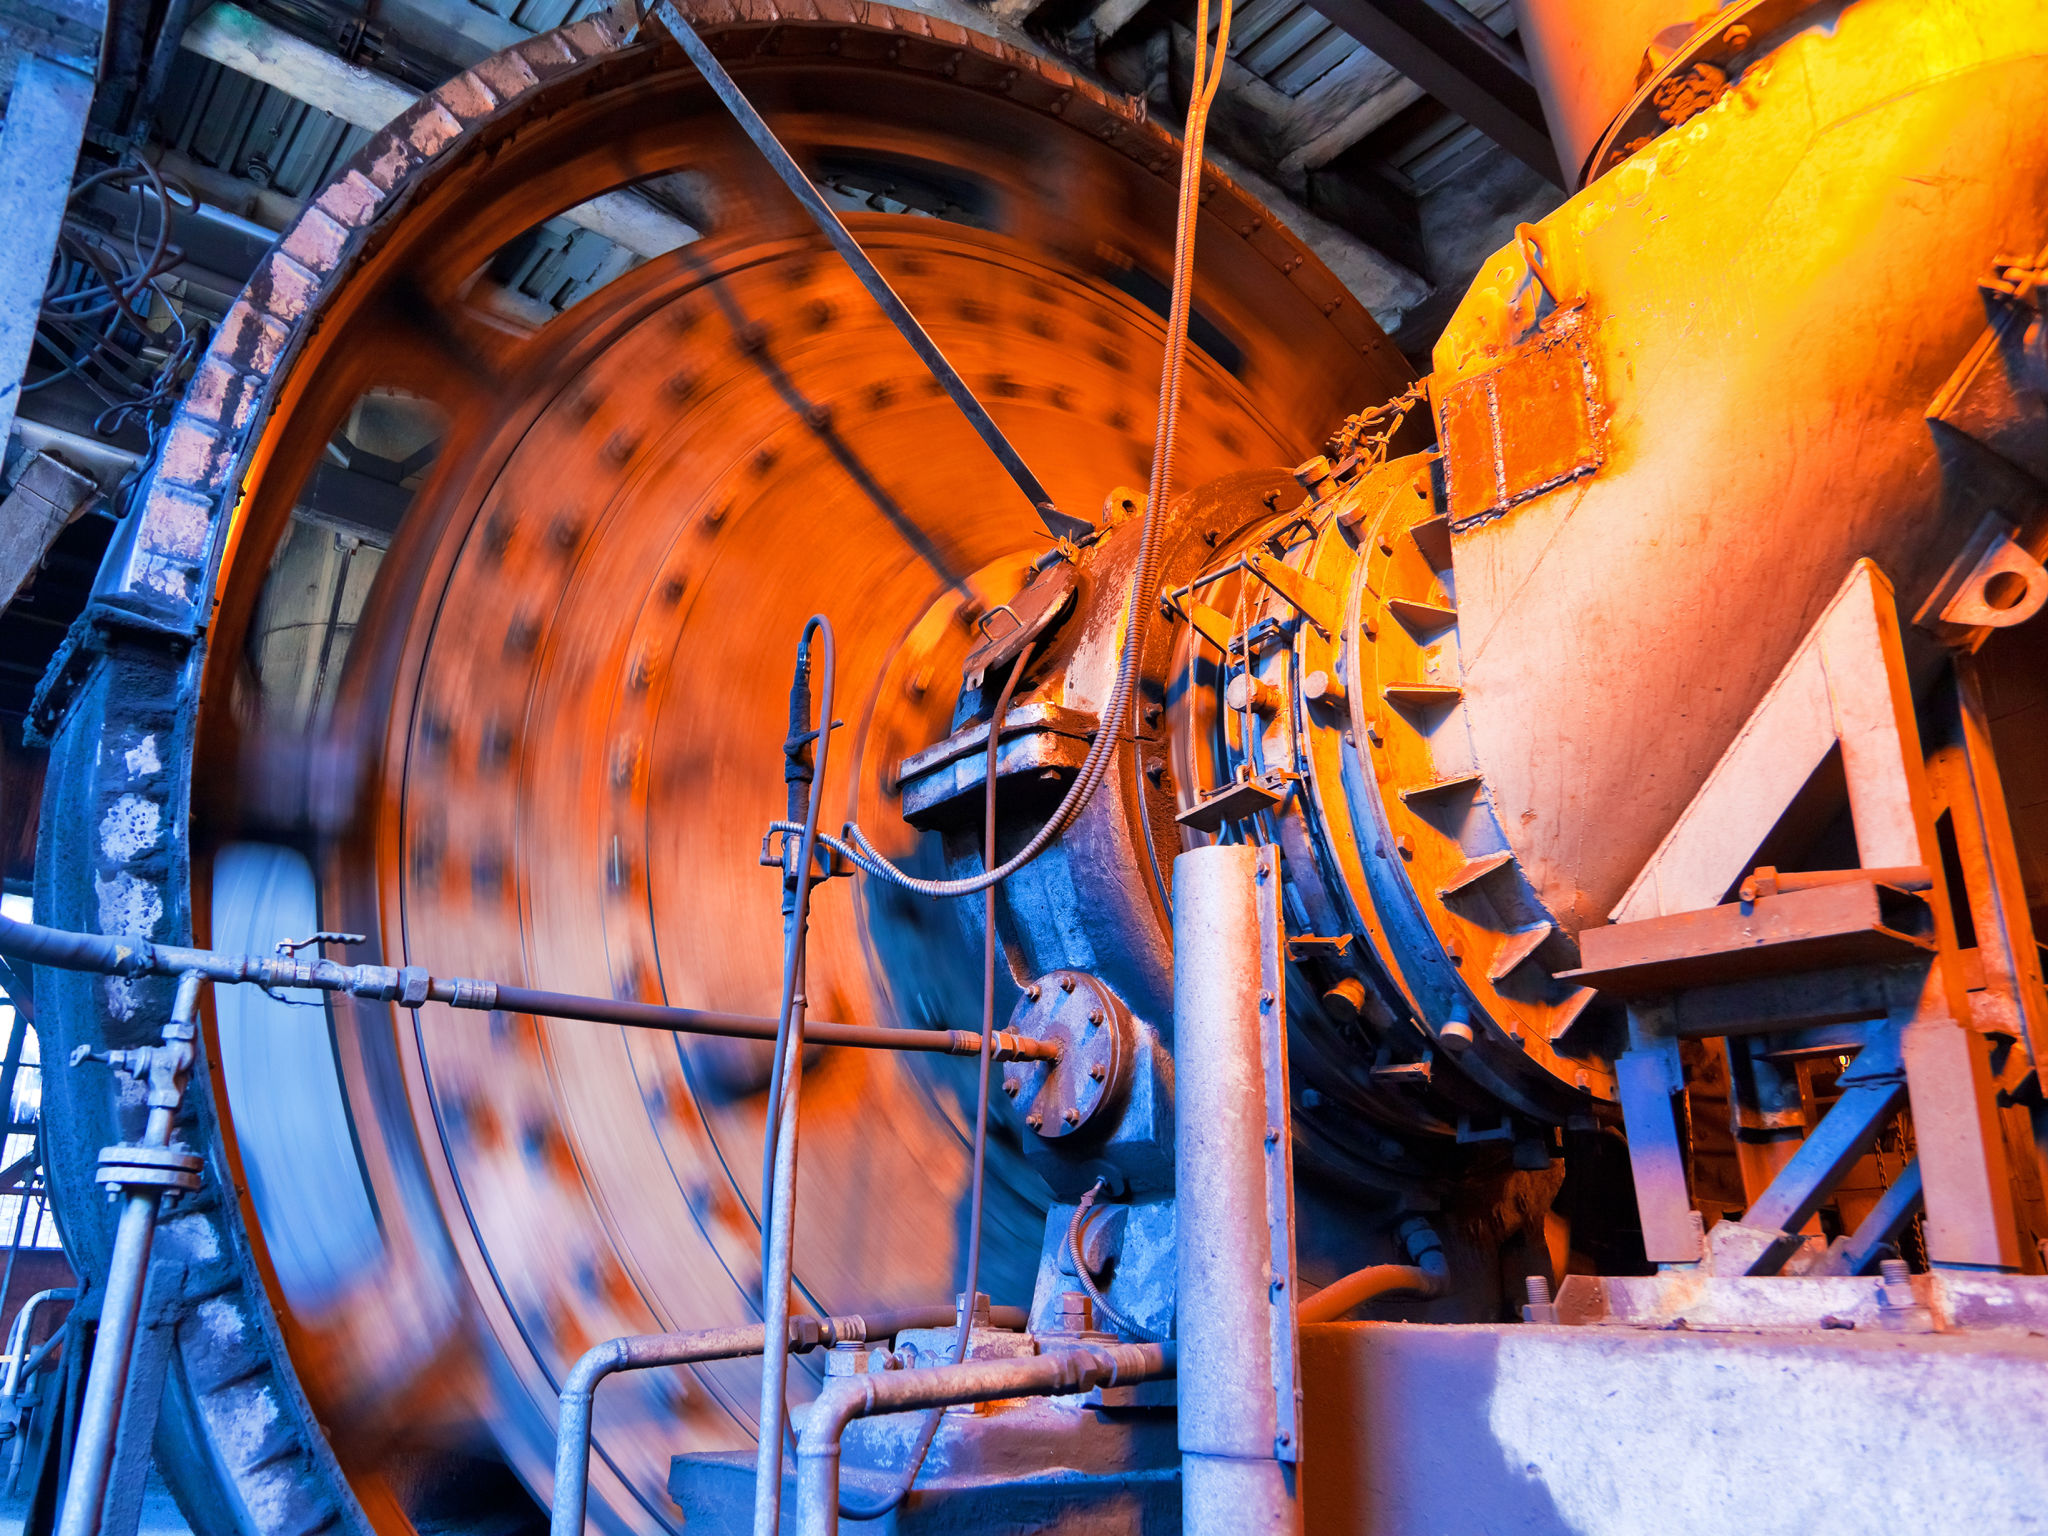 shutterstock_65742787-Working-coal-mixer-at-the-metallurgical-plant-Finland.jpg